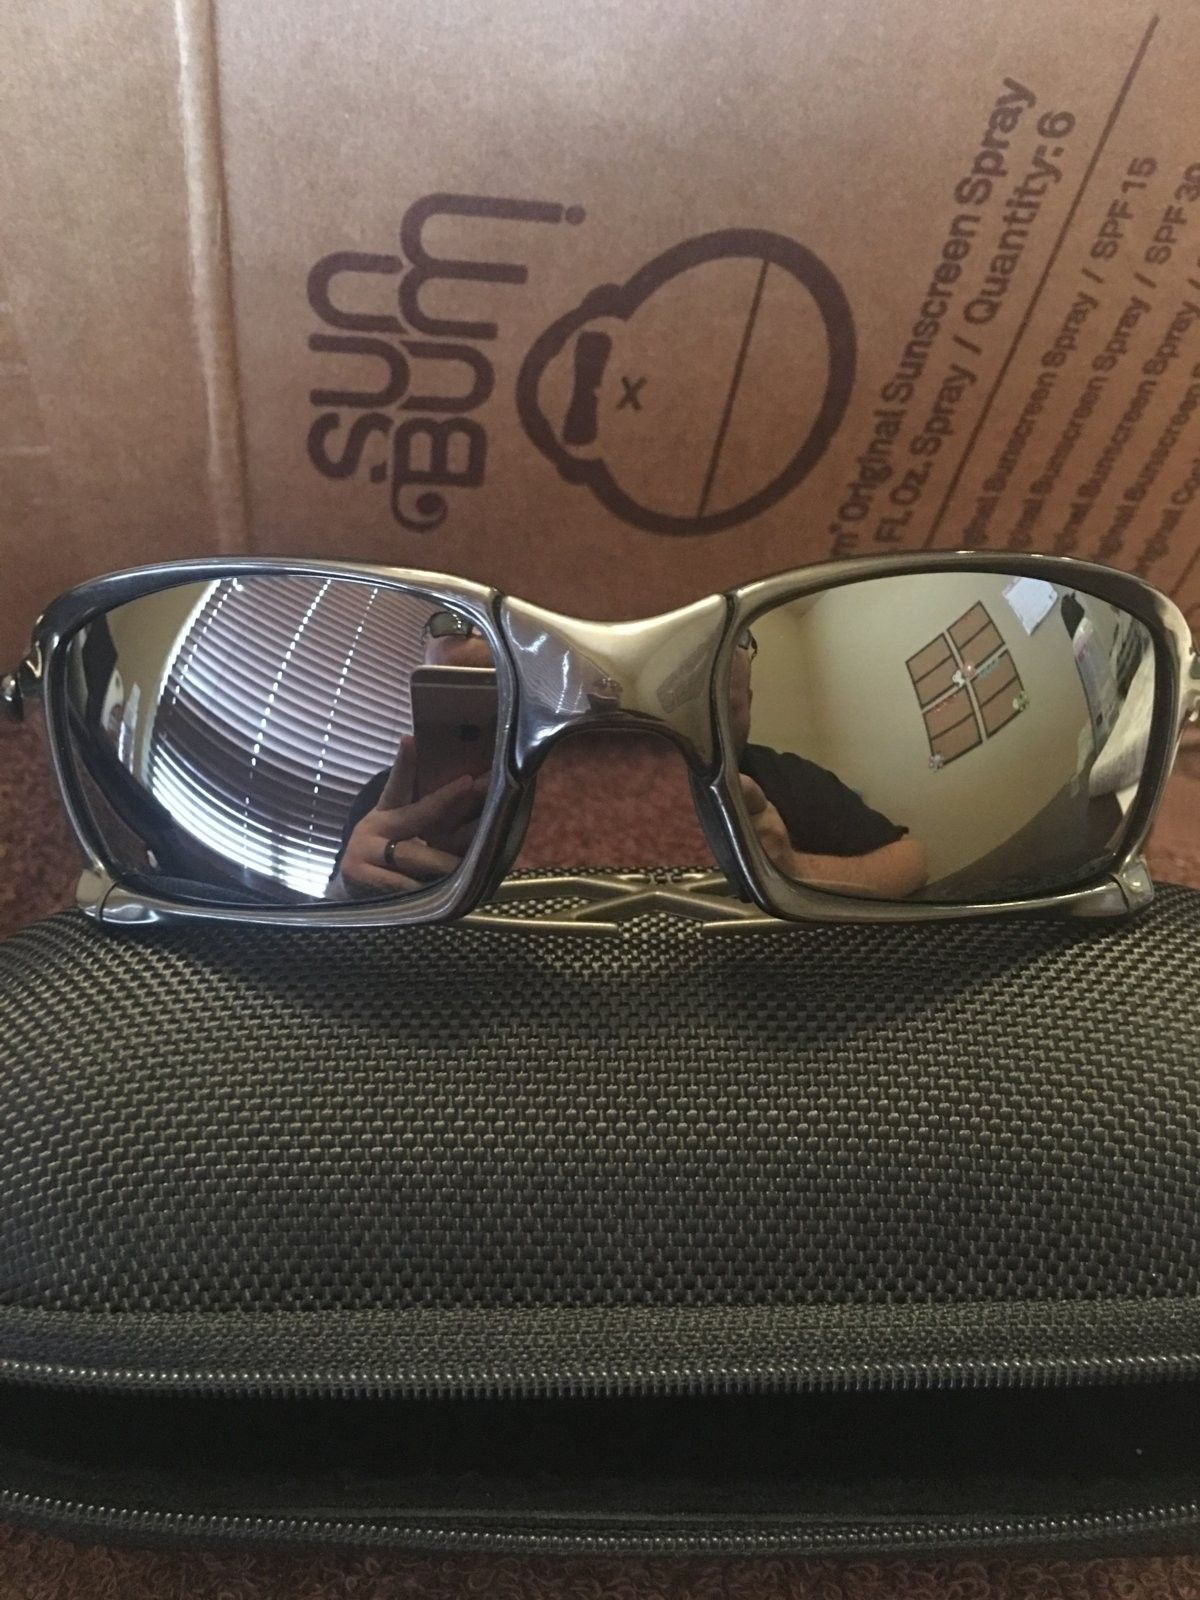 **$440** LNIB XS Polished Carbon/BIP. - image.jpeg